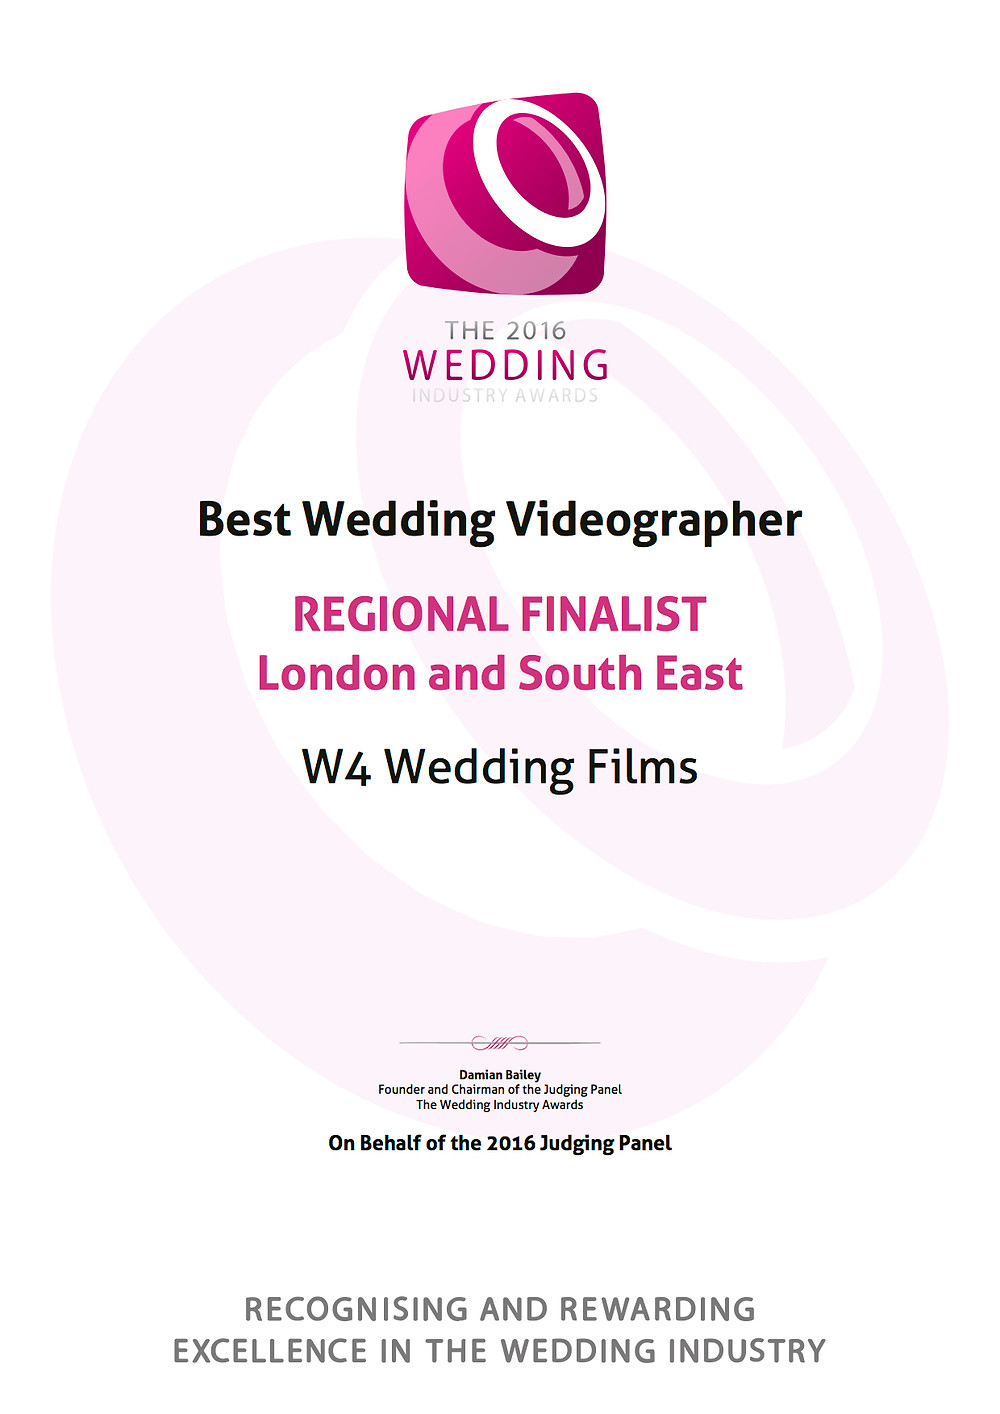 Award Winning wedding videographer from the Wedding Industry Awards